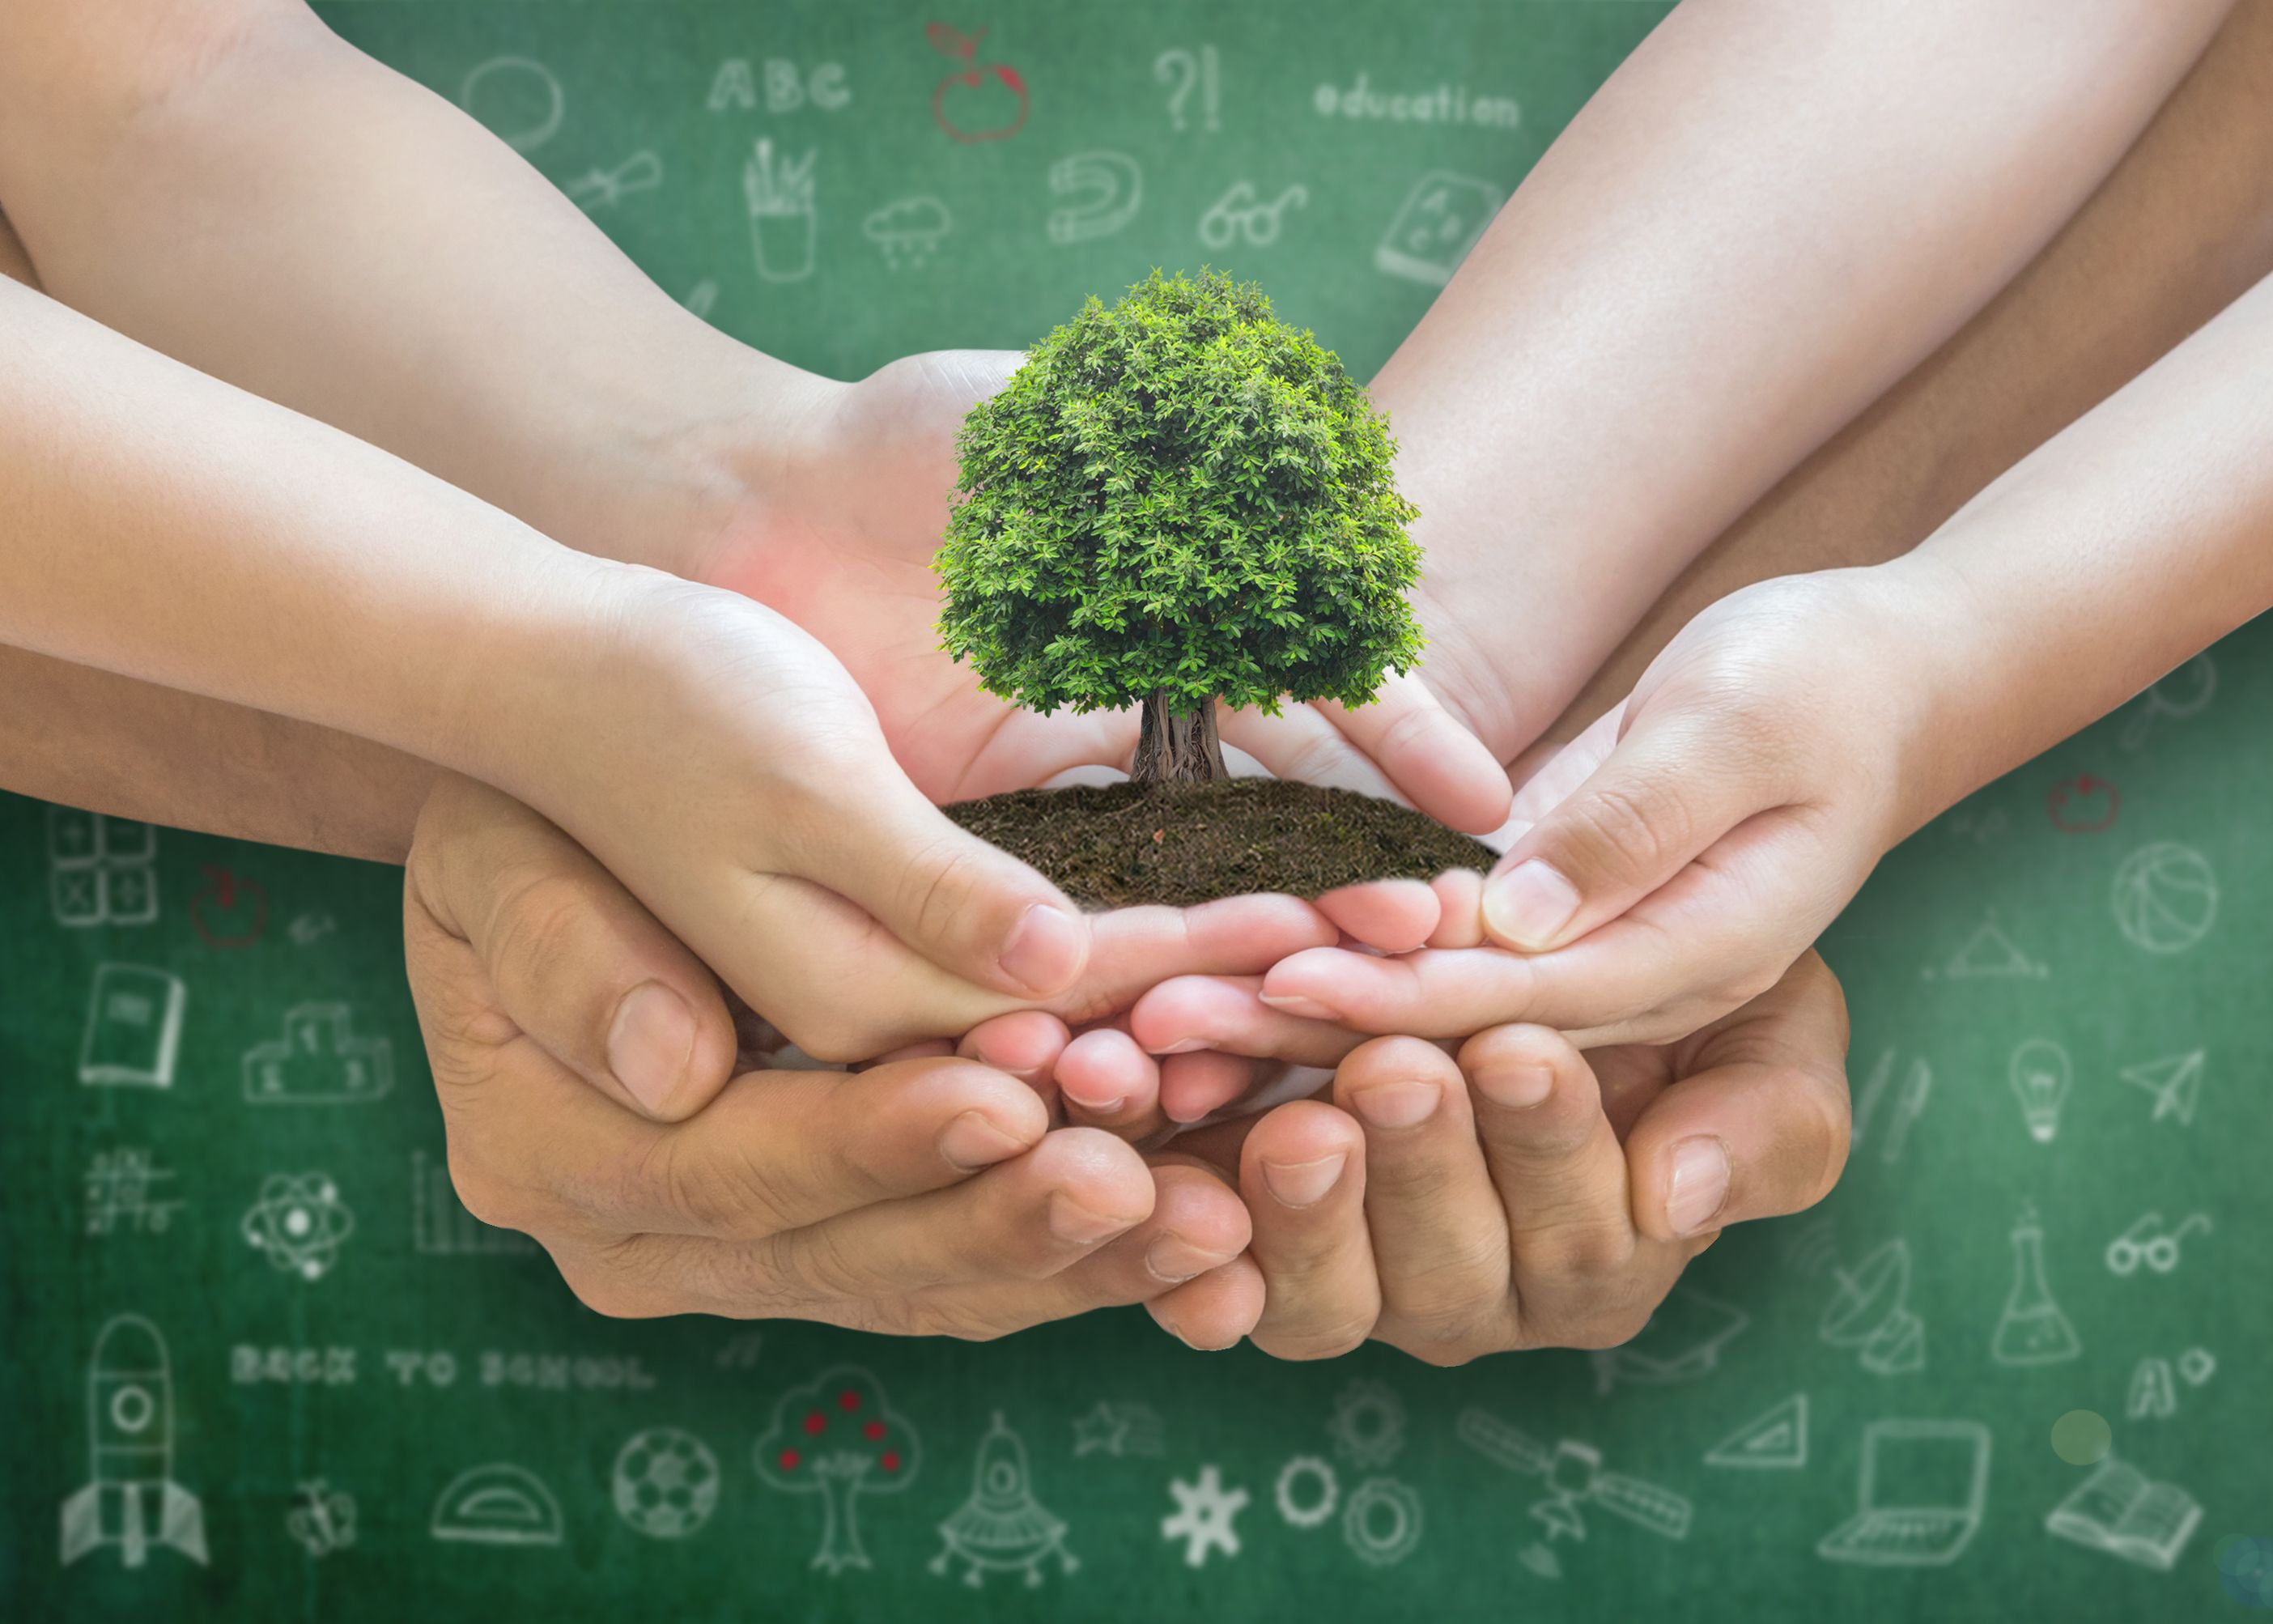 Building Blocks to a Sustainable Future